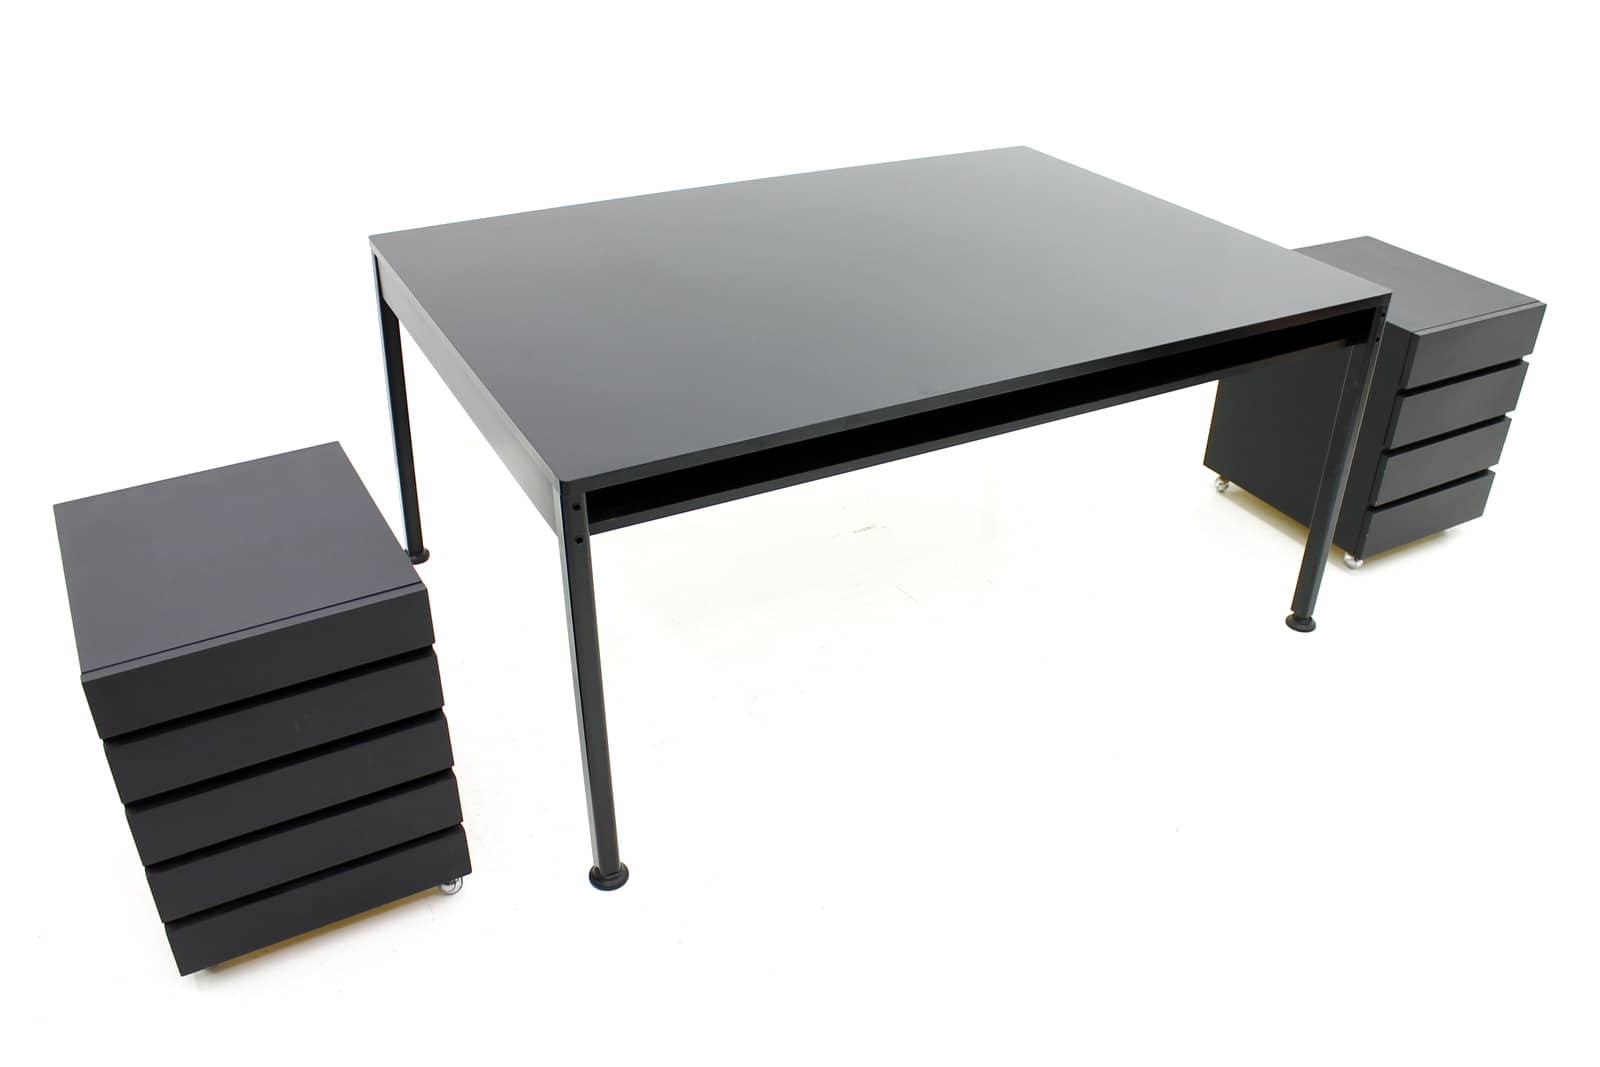 Rare Dieter Rams Partner Desk with two Container, Vitsoe, 1957 (t)